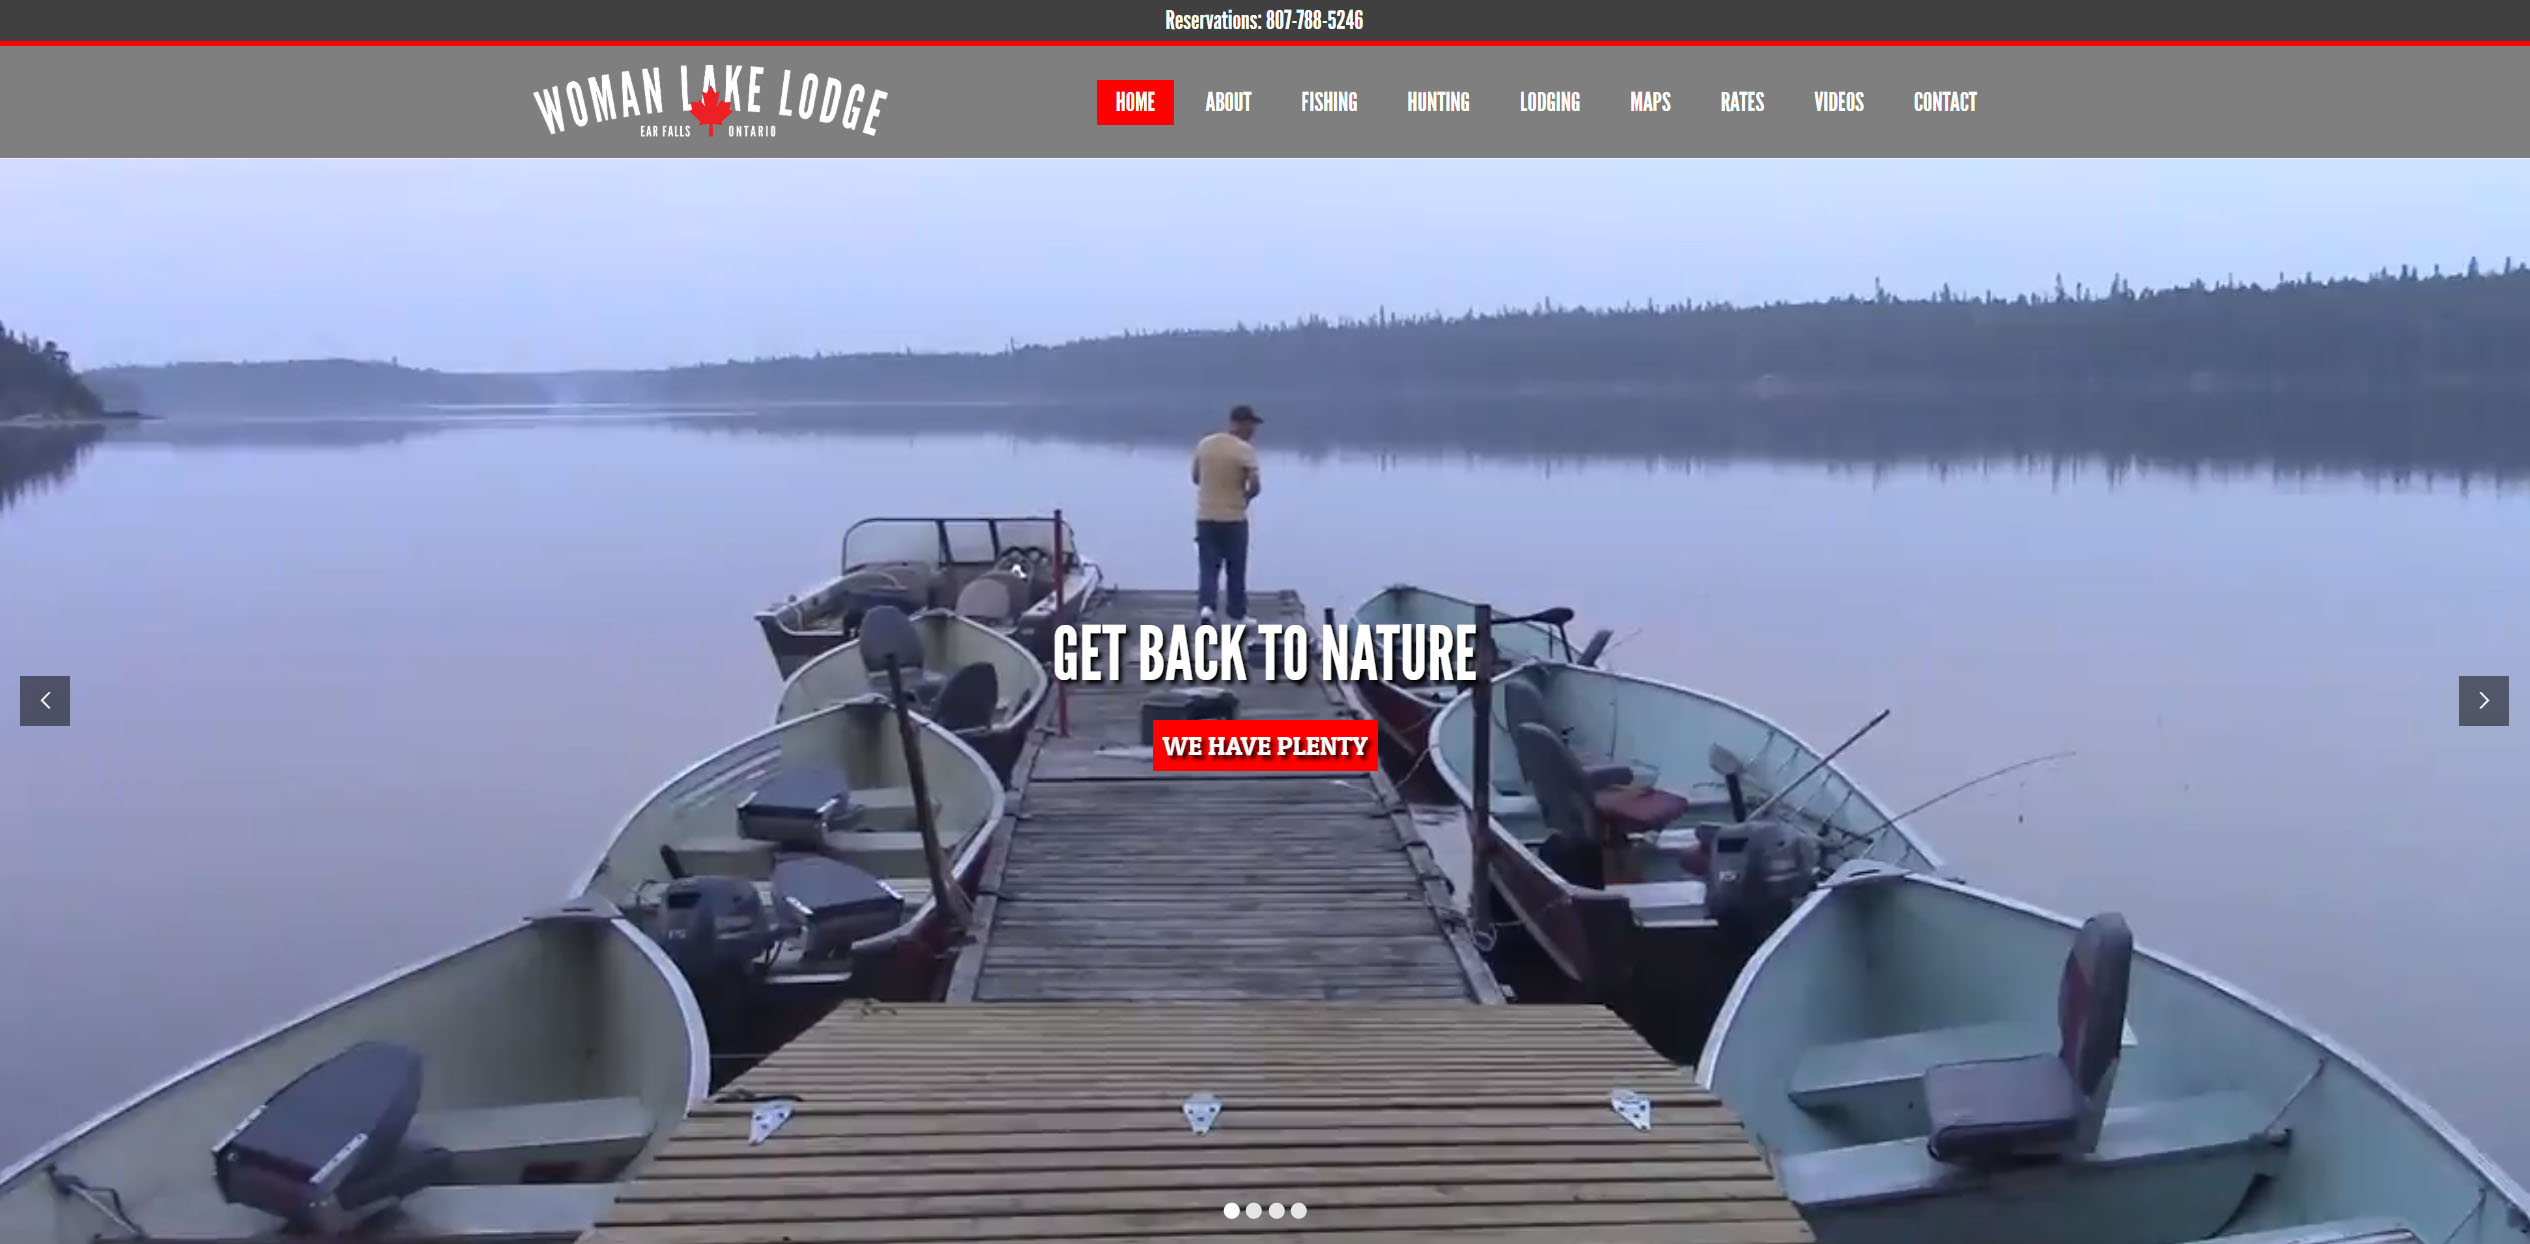 Woman Lake Lodge's current home page